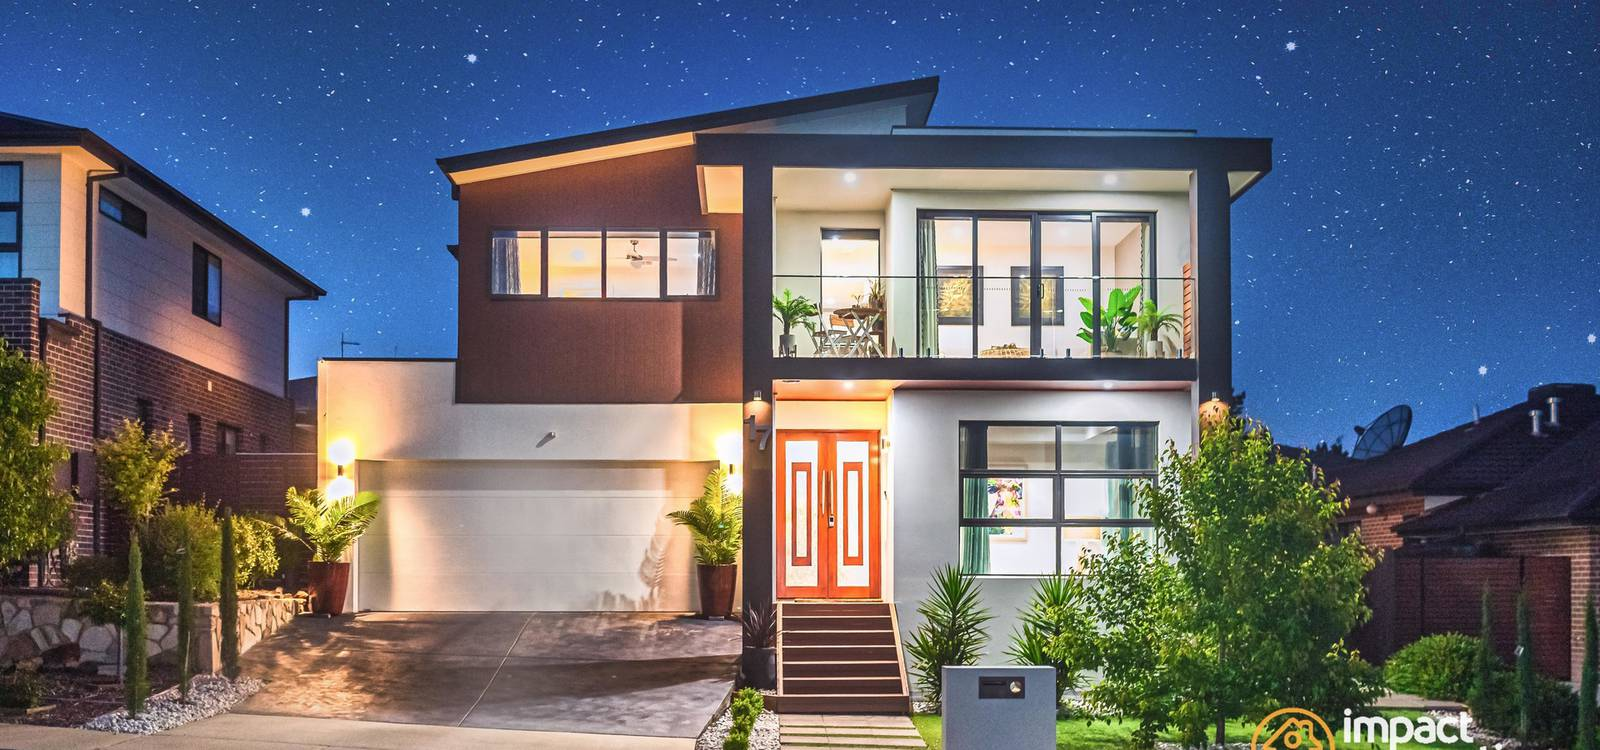 17 Janine Haines Terrace COOMBS, ACT 2611 - photo 1